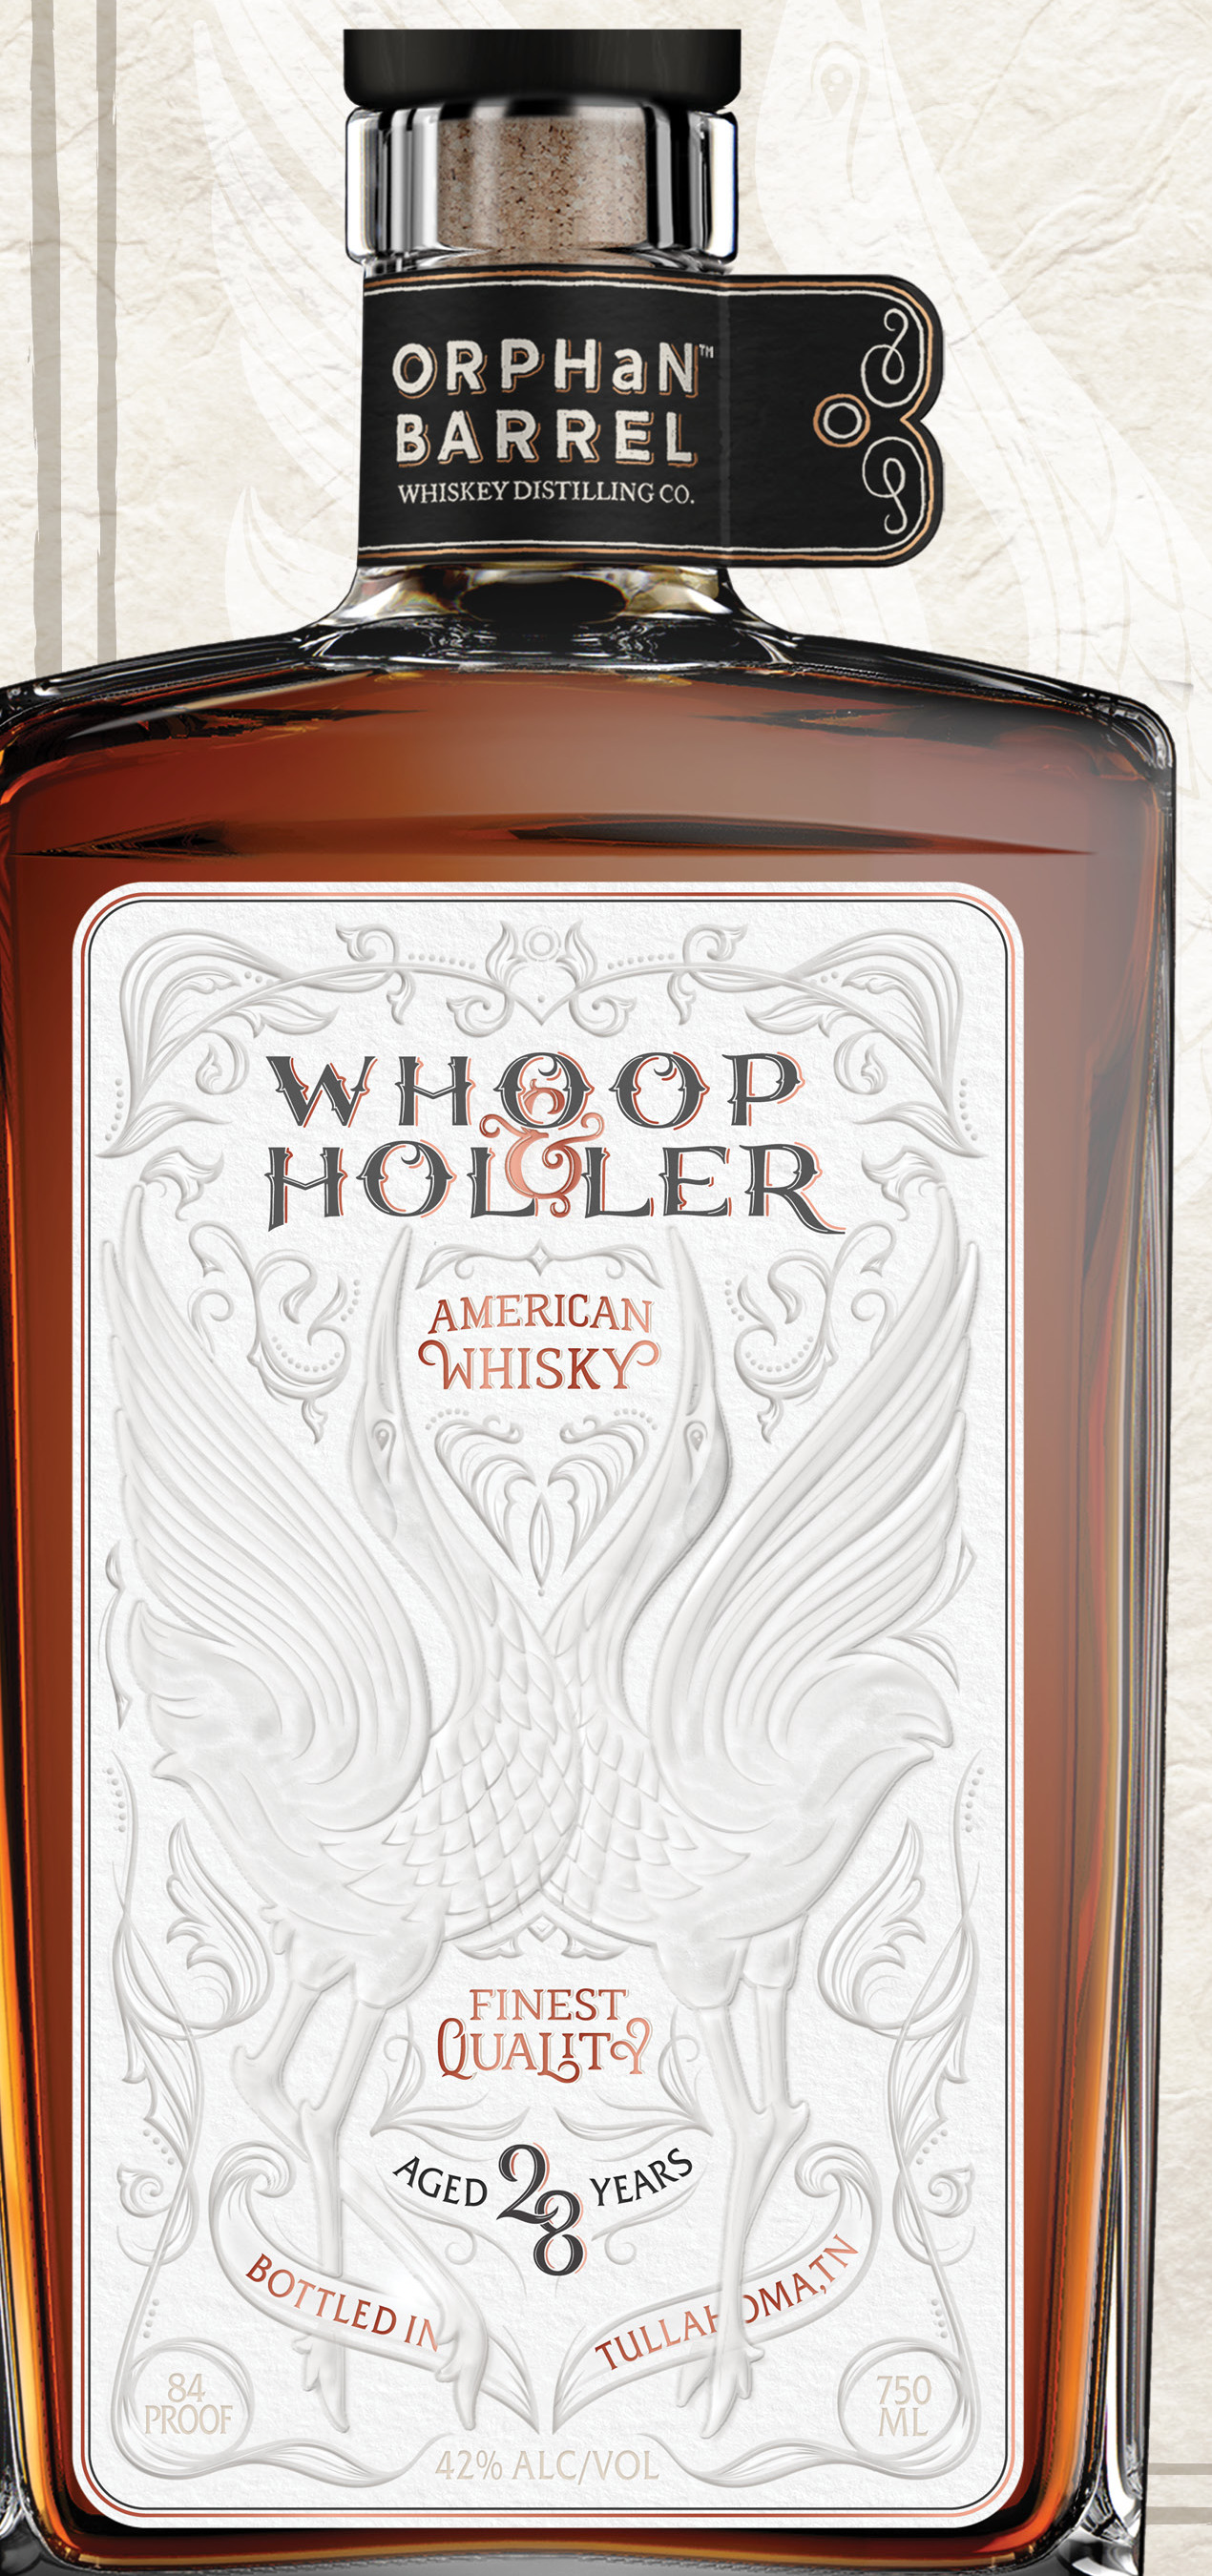 Image courtesy of Taylor Strategy, for Orphan Barrel Distilling Co.